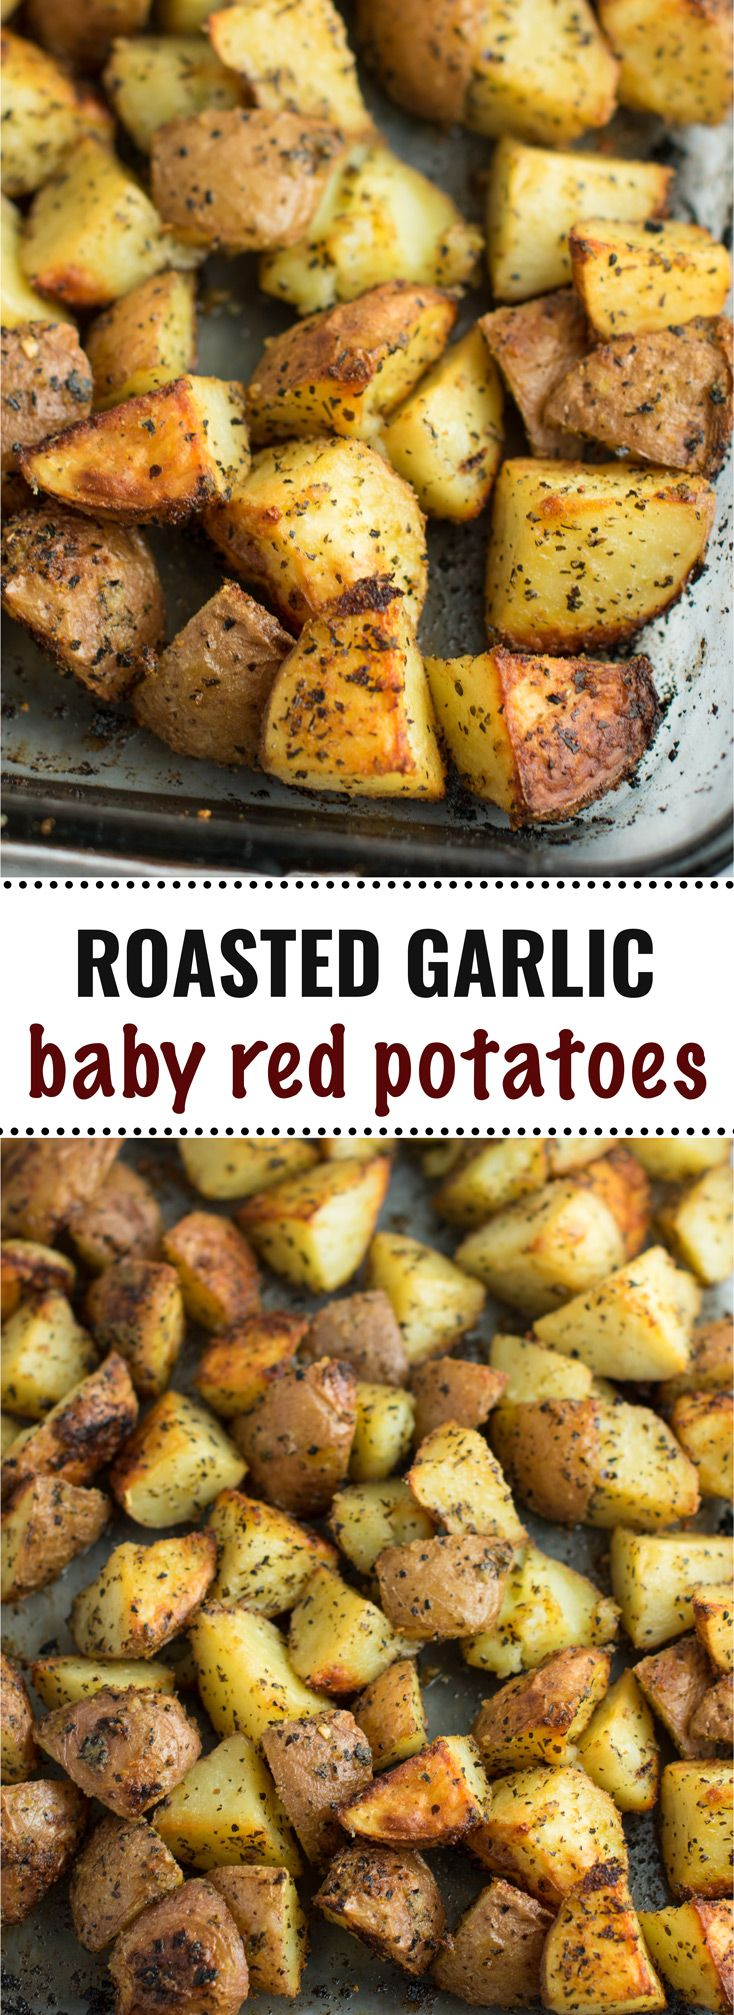 These roasted garlic baby red potatoes are and easy and delicious side dish! #babyredpotatoes #vegan #roastedpotatoes